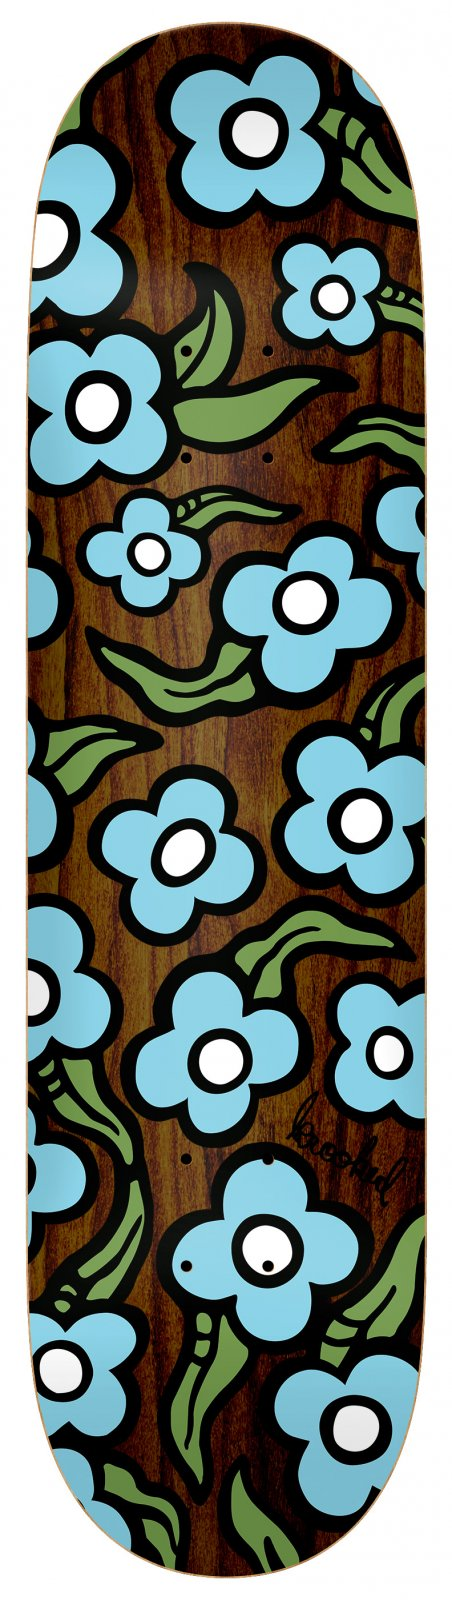 Krooked Team Wildstyle Flowers Assorted stains 8.5 x 31.8